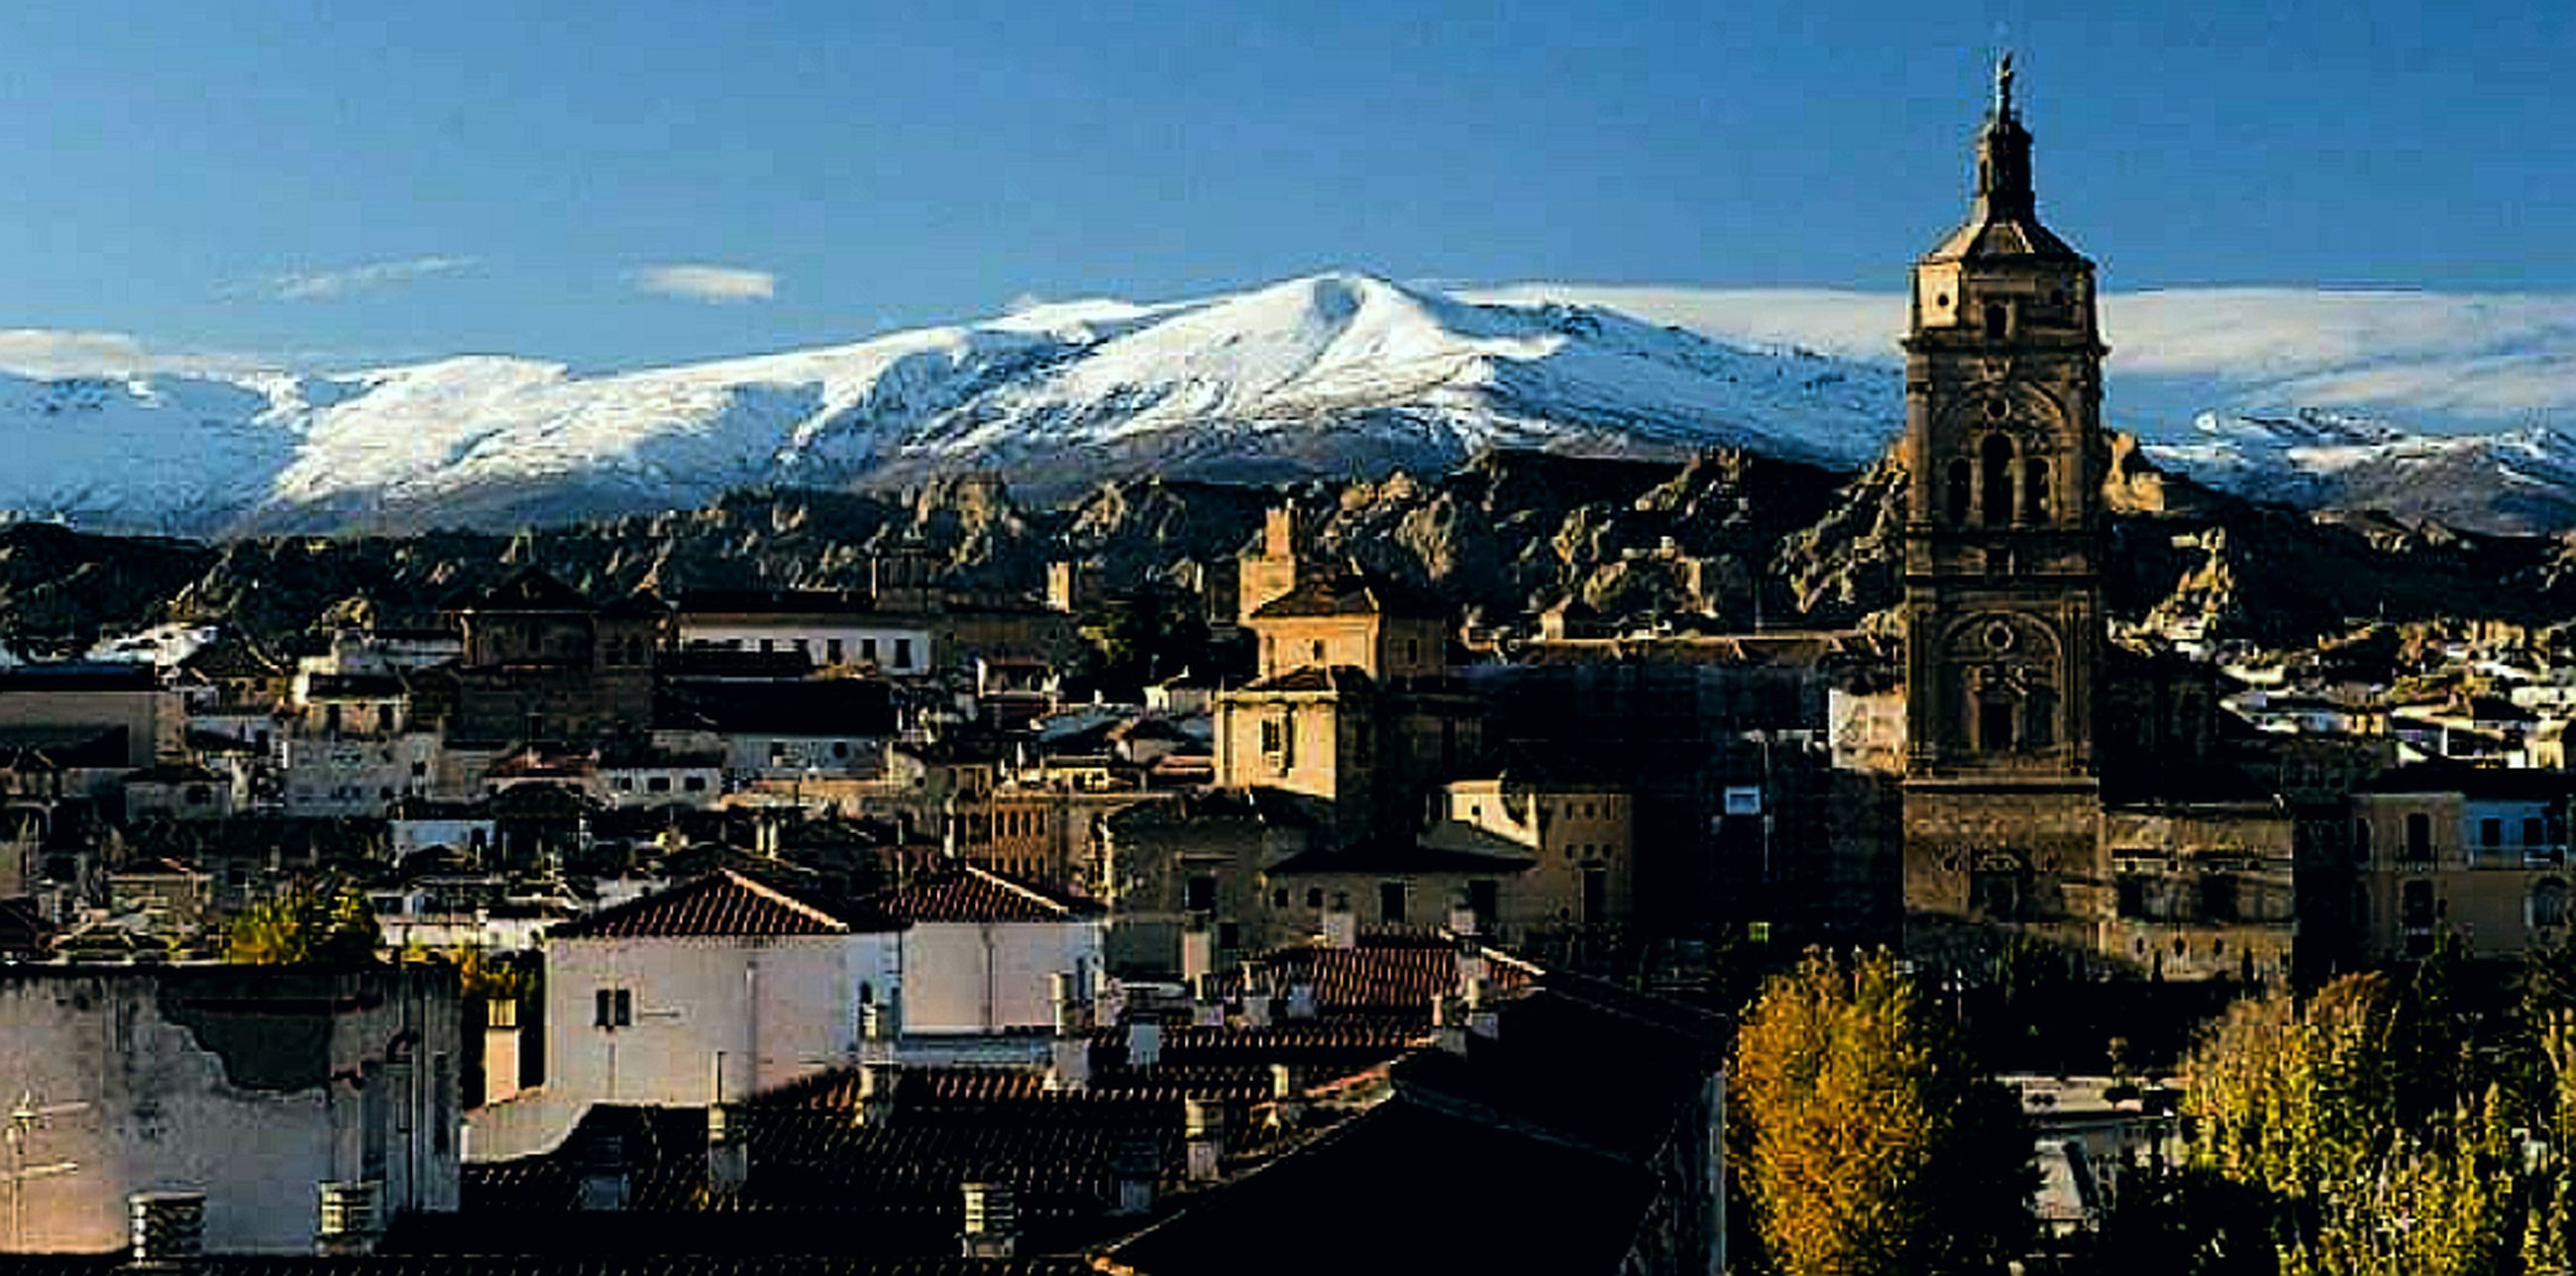 snow, city, winter, architecture, mountain, cityscape, building exterior, snowcapped mountain, travel destinations, built structure, travel, tradition, roof, cold temperature, town, landscape, place of worship, night, tower, mountain range, business finance and industry, outdoors, scenics, residential building, history, facade, apartment, mountain peak, snowing, sky, nature, no people, urban skyline, downtown district